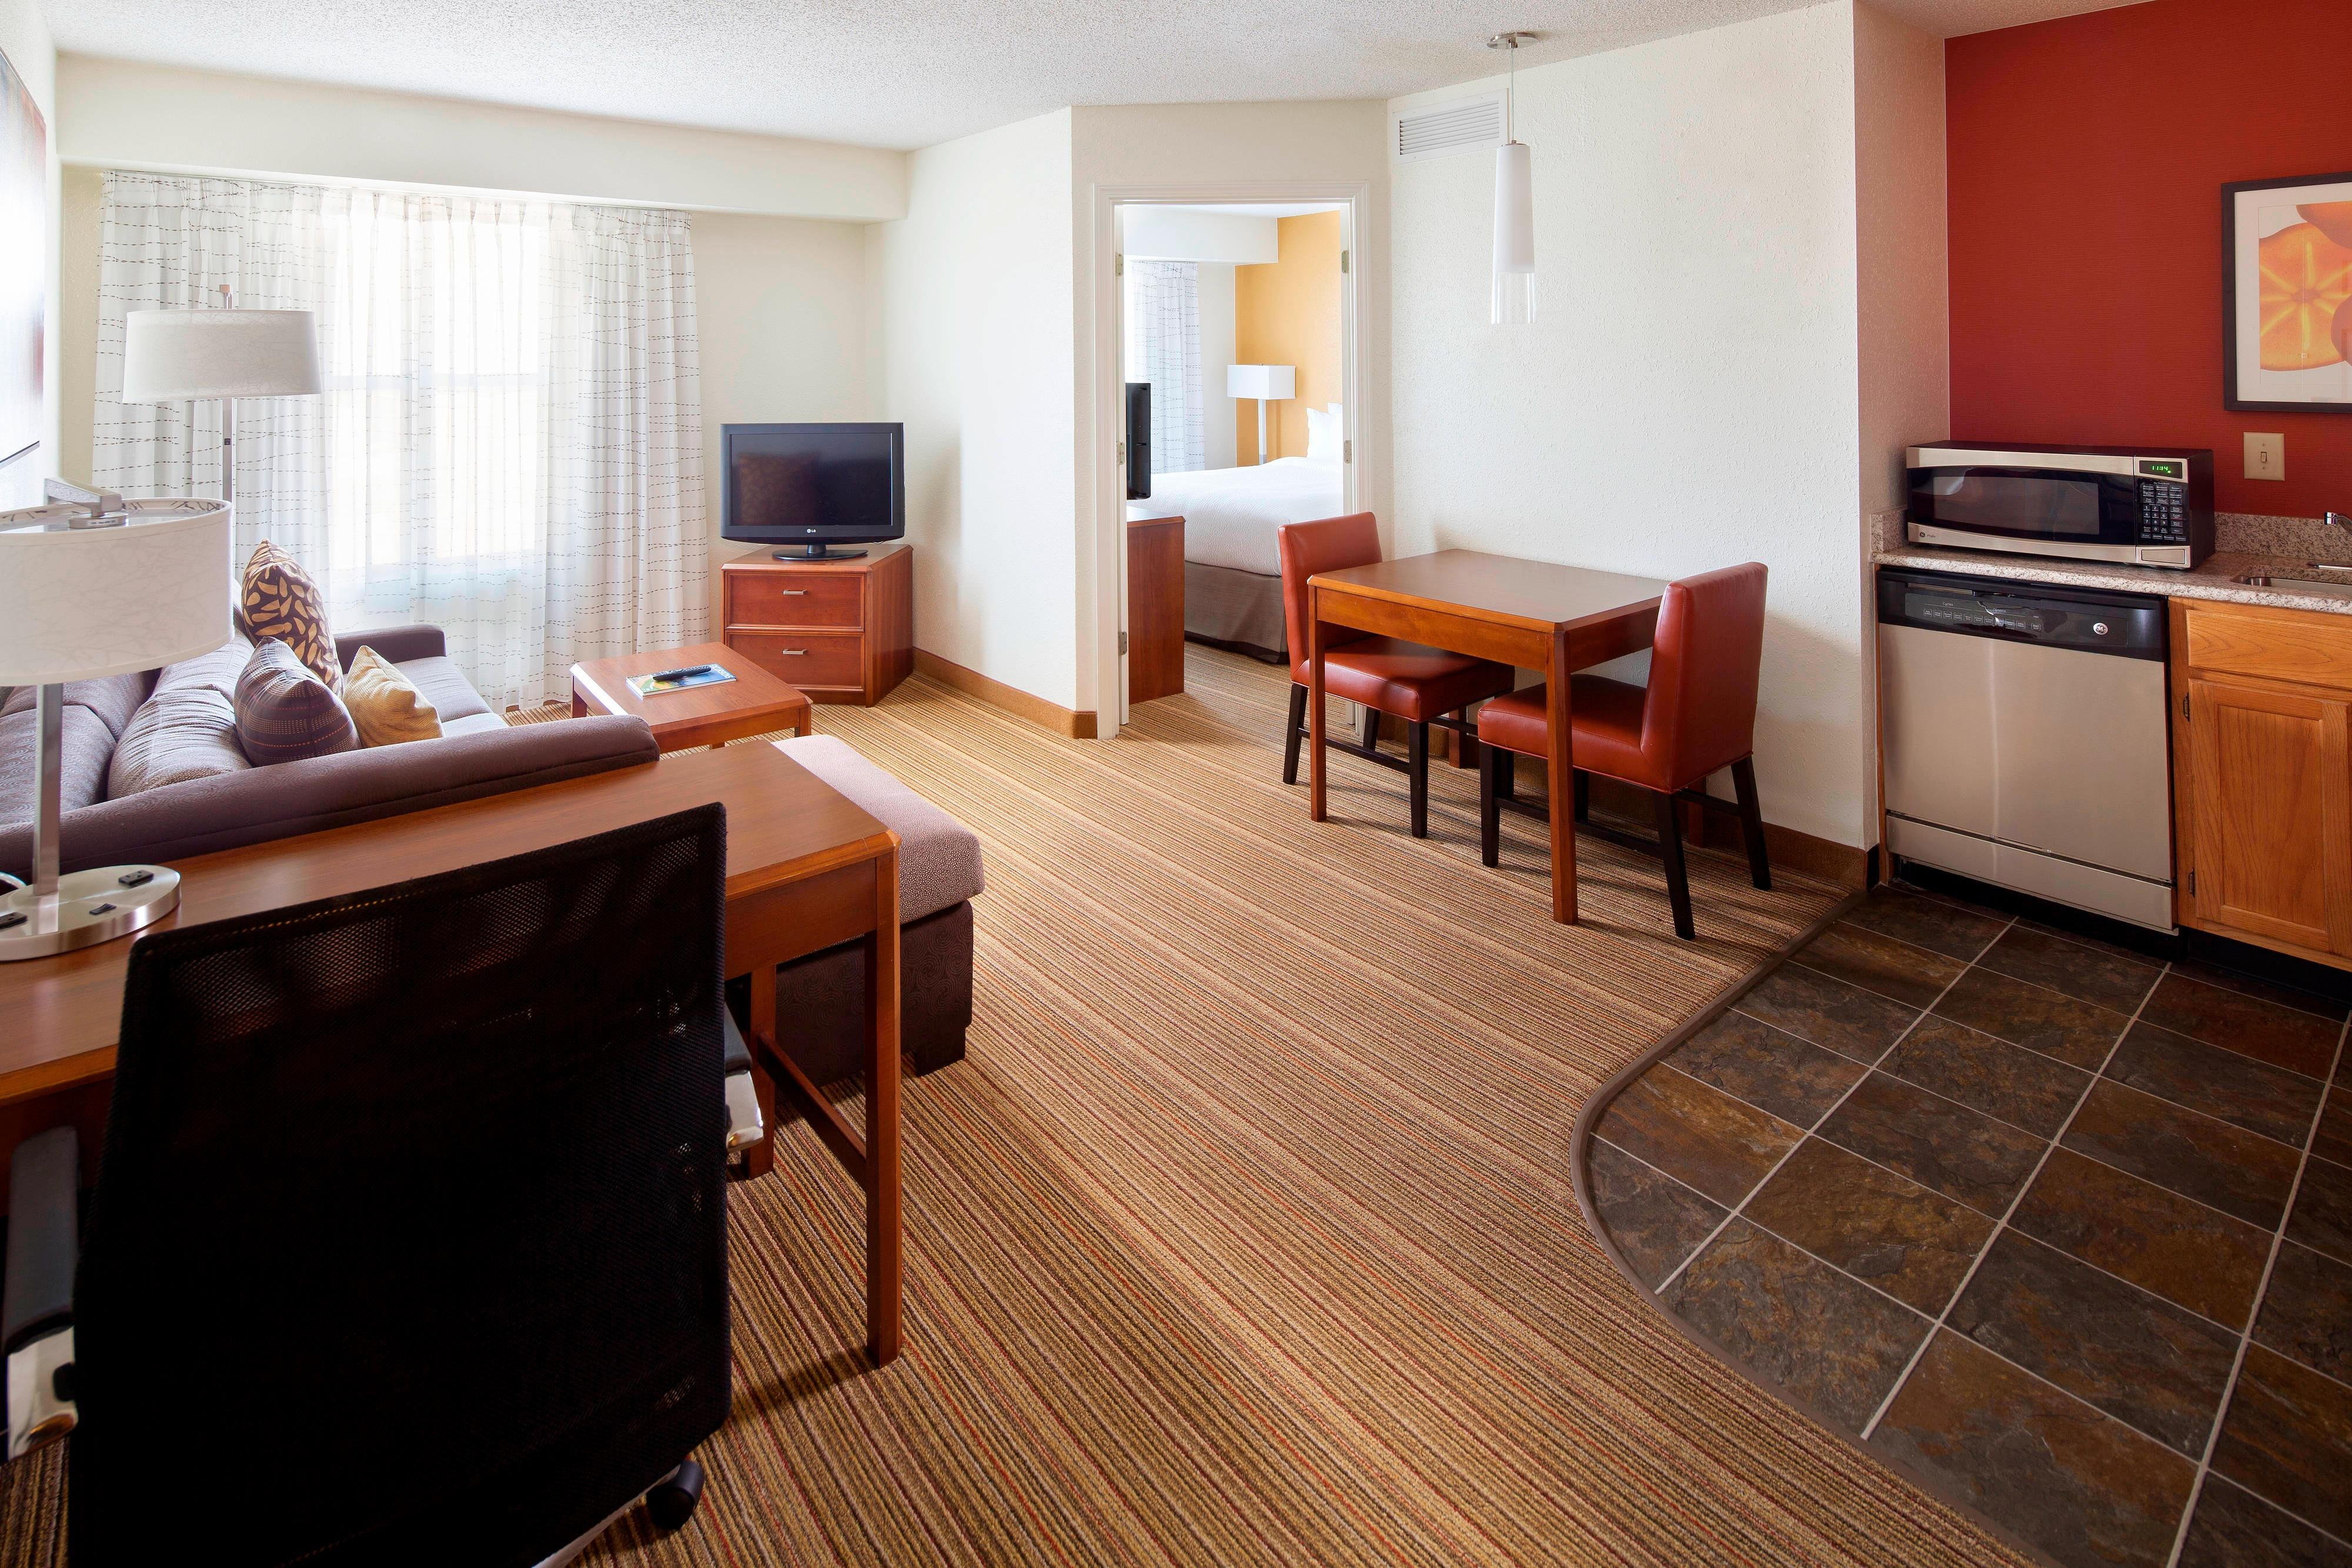 One Bedroom Suite in Extended Stay Birmingham Homewood hotel